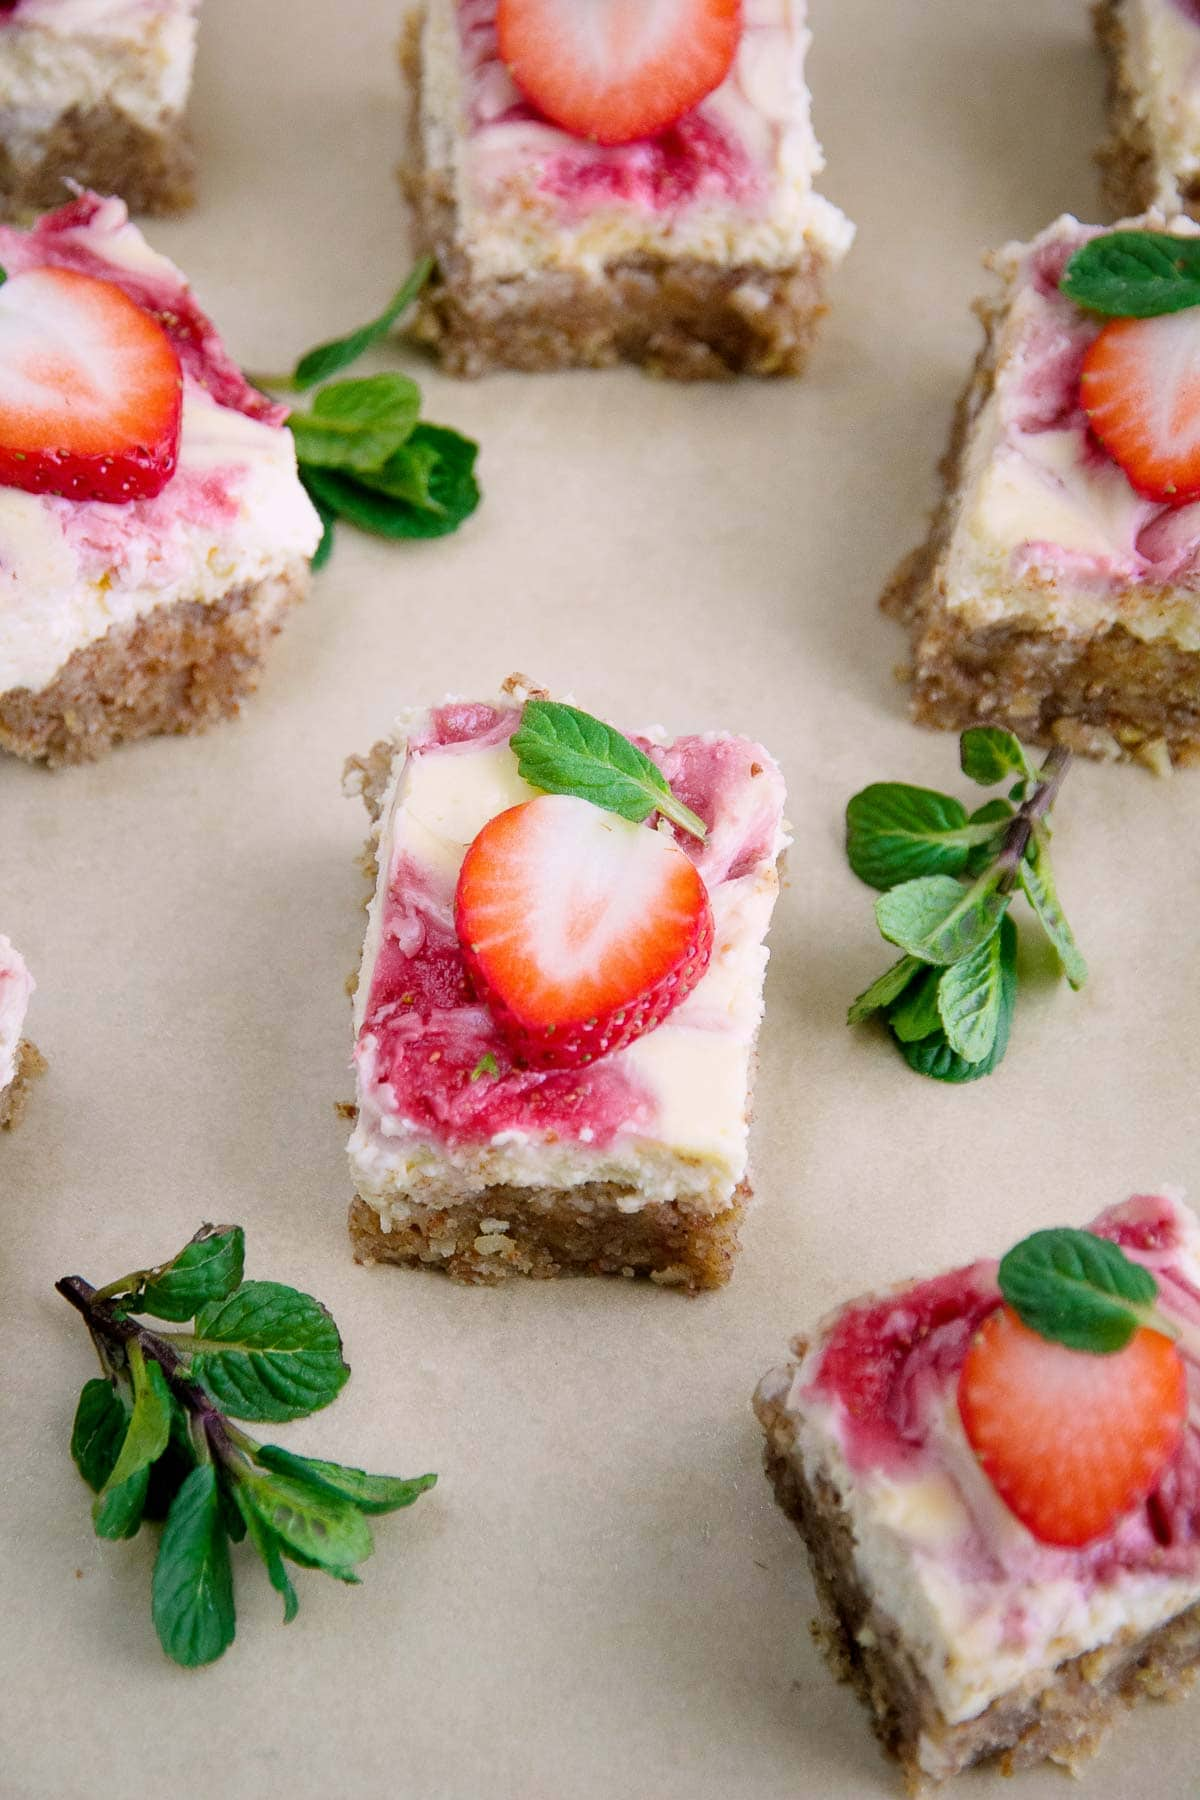 Freshly baked strawberry cheesecake recipe cut into squares.